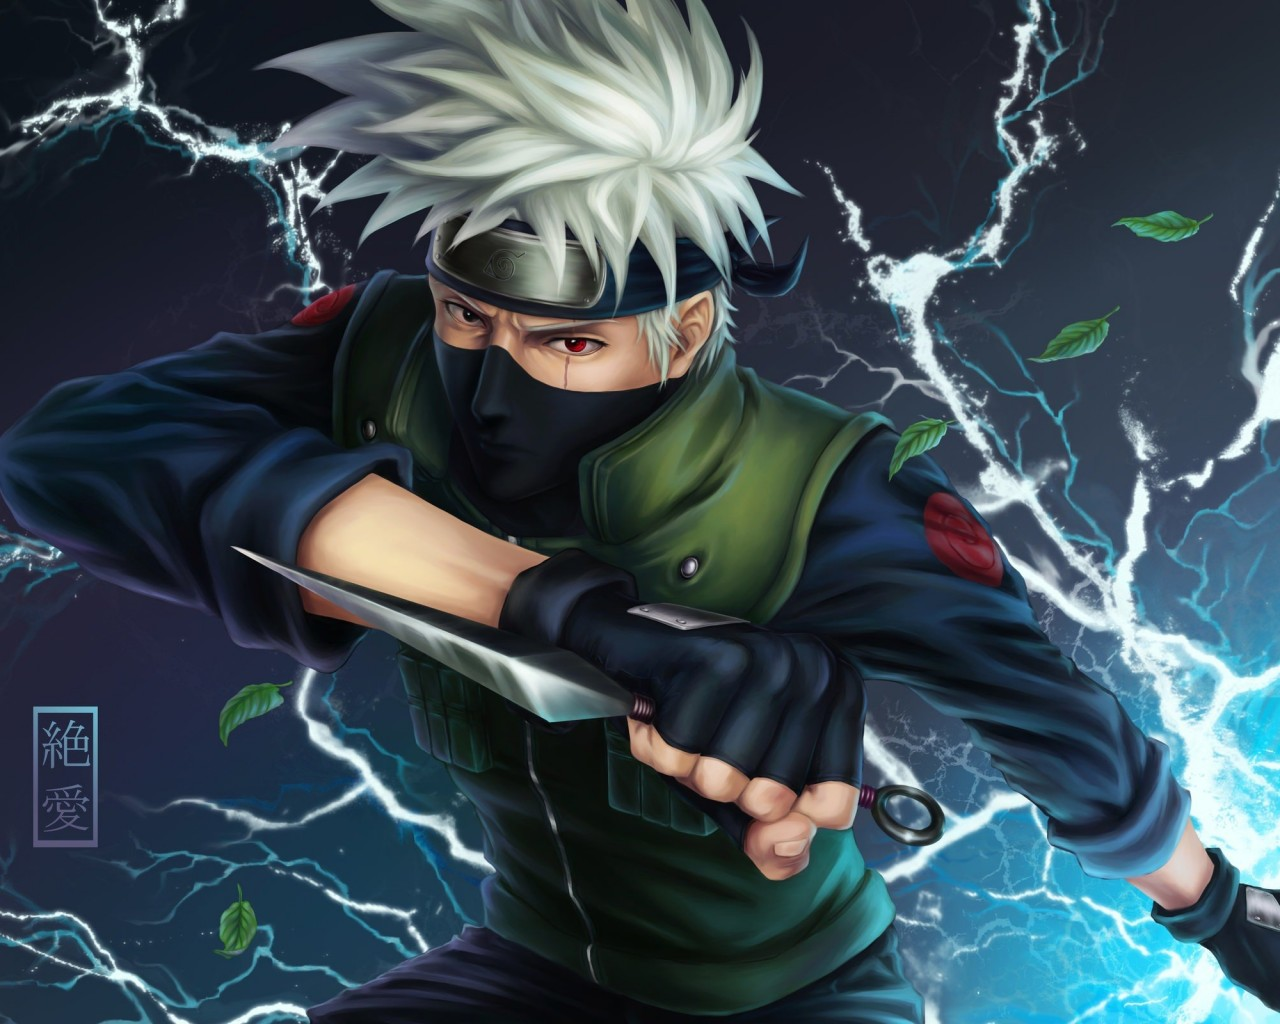 Kakashi Hatake Wallpaper for Desktop 1280x1024